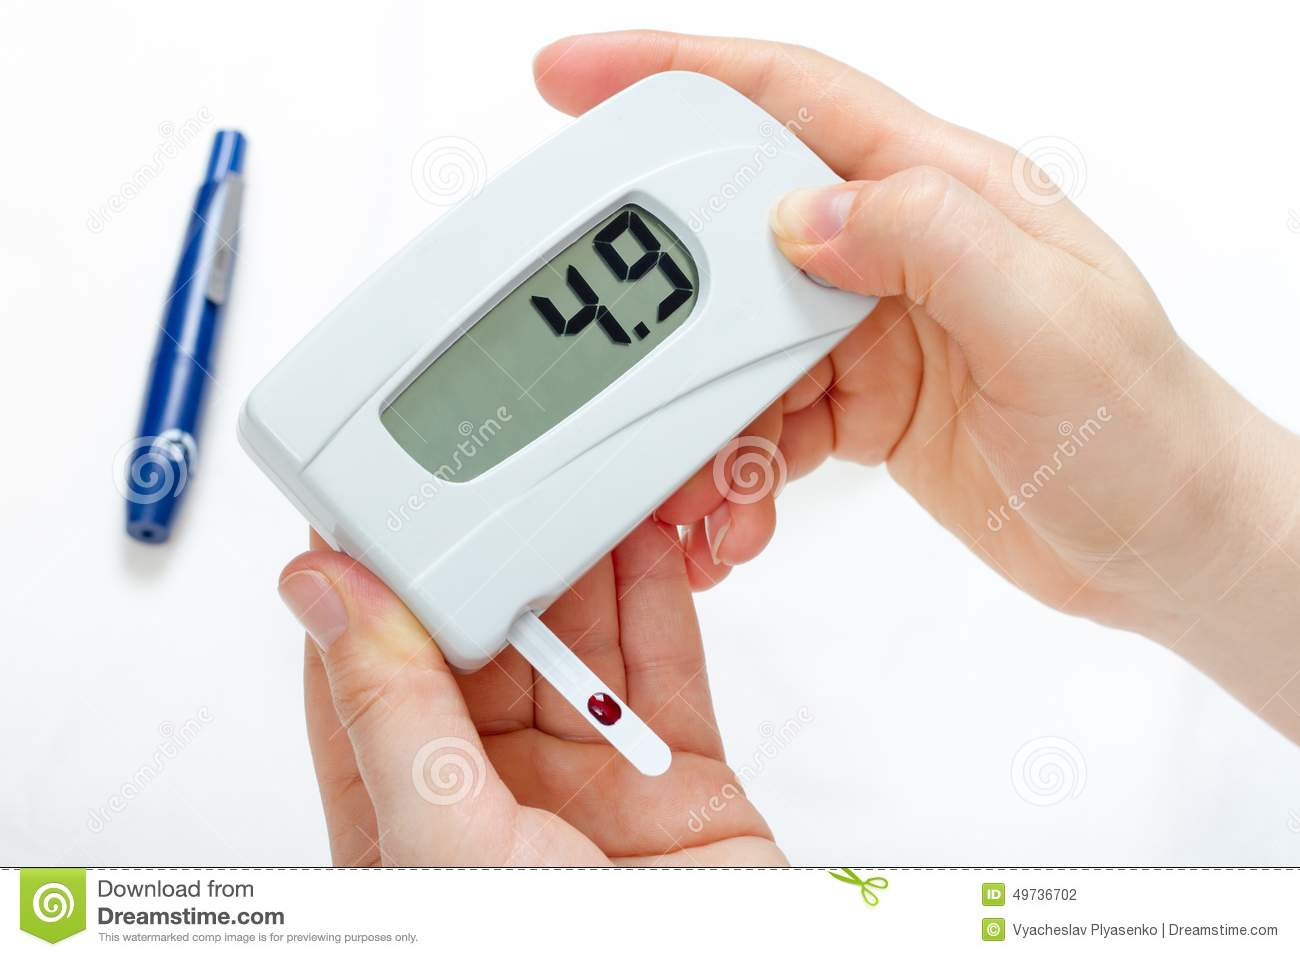 Low blood sugar can be a concern, too | Health Beat ...